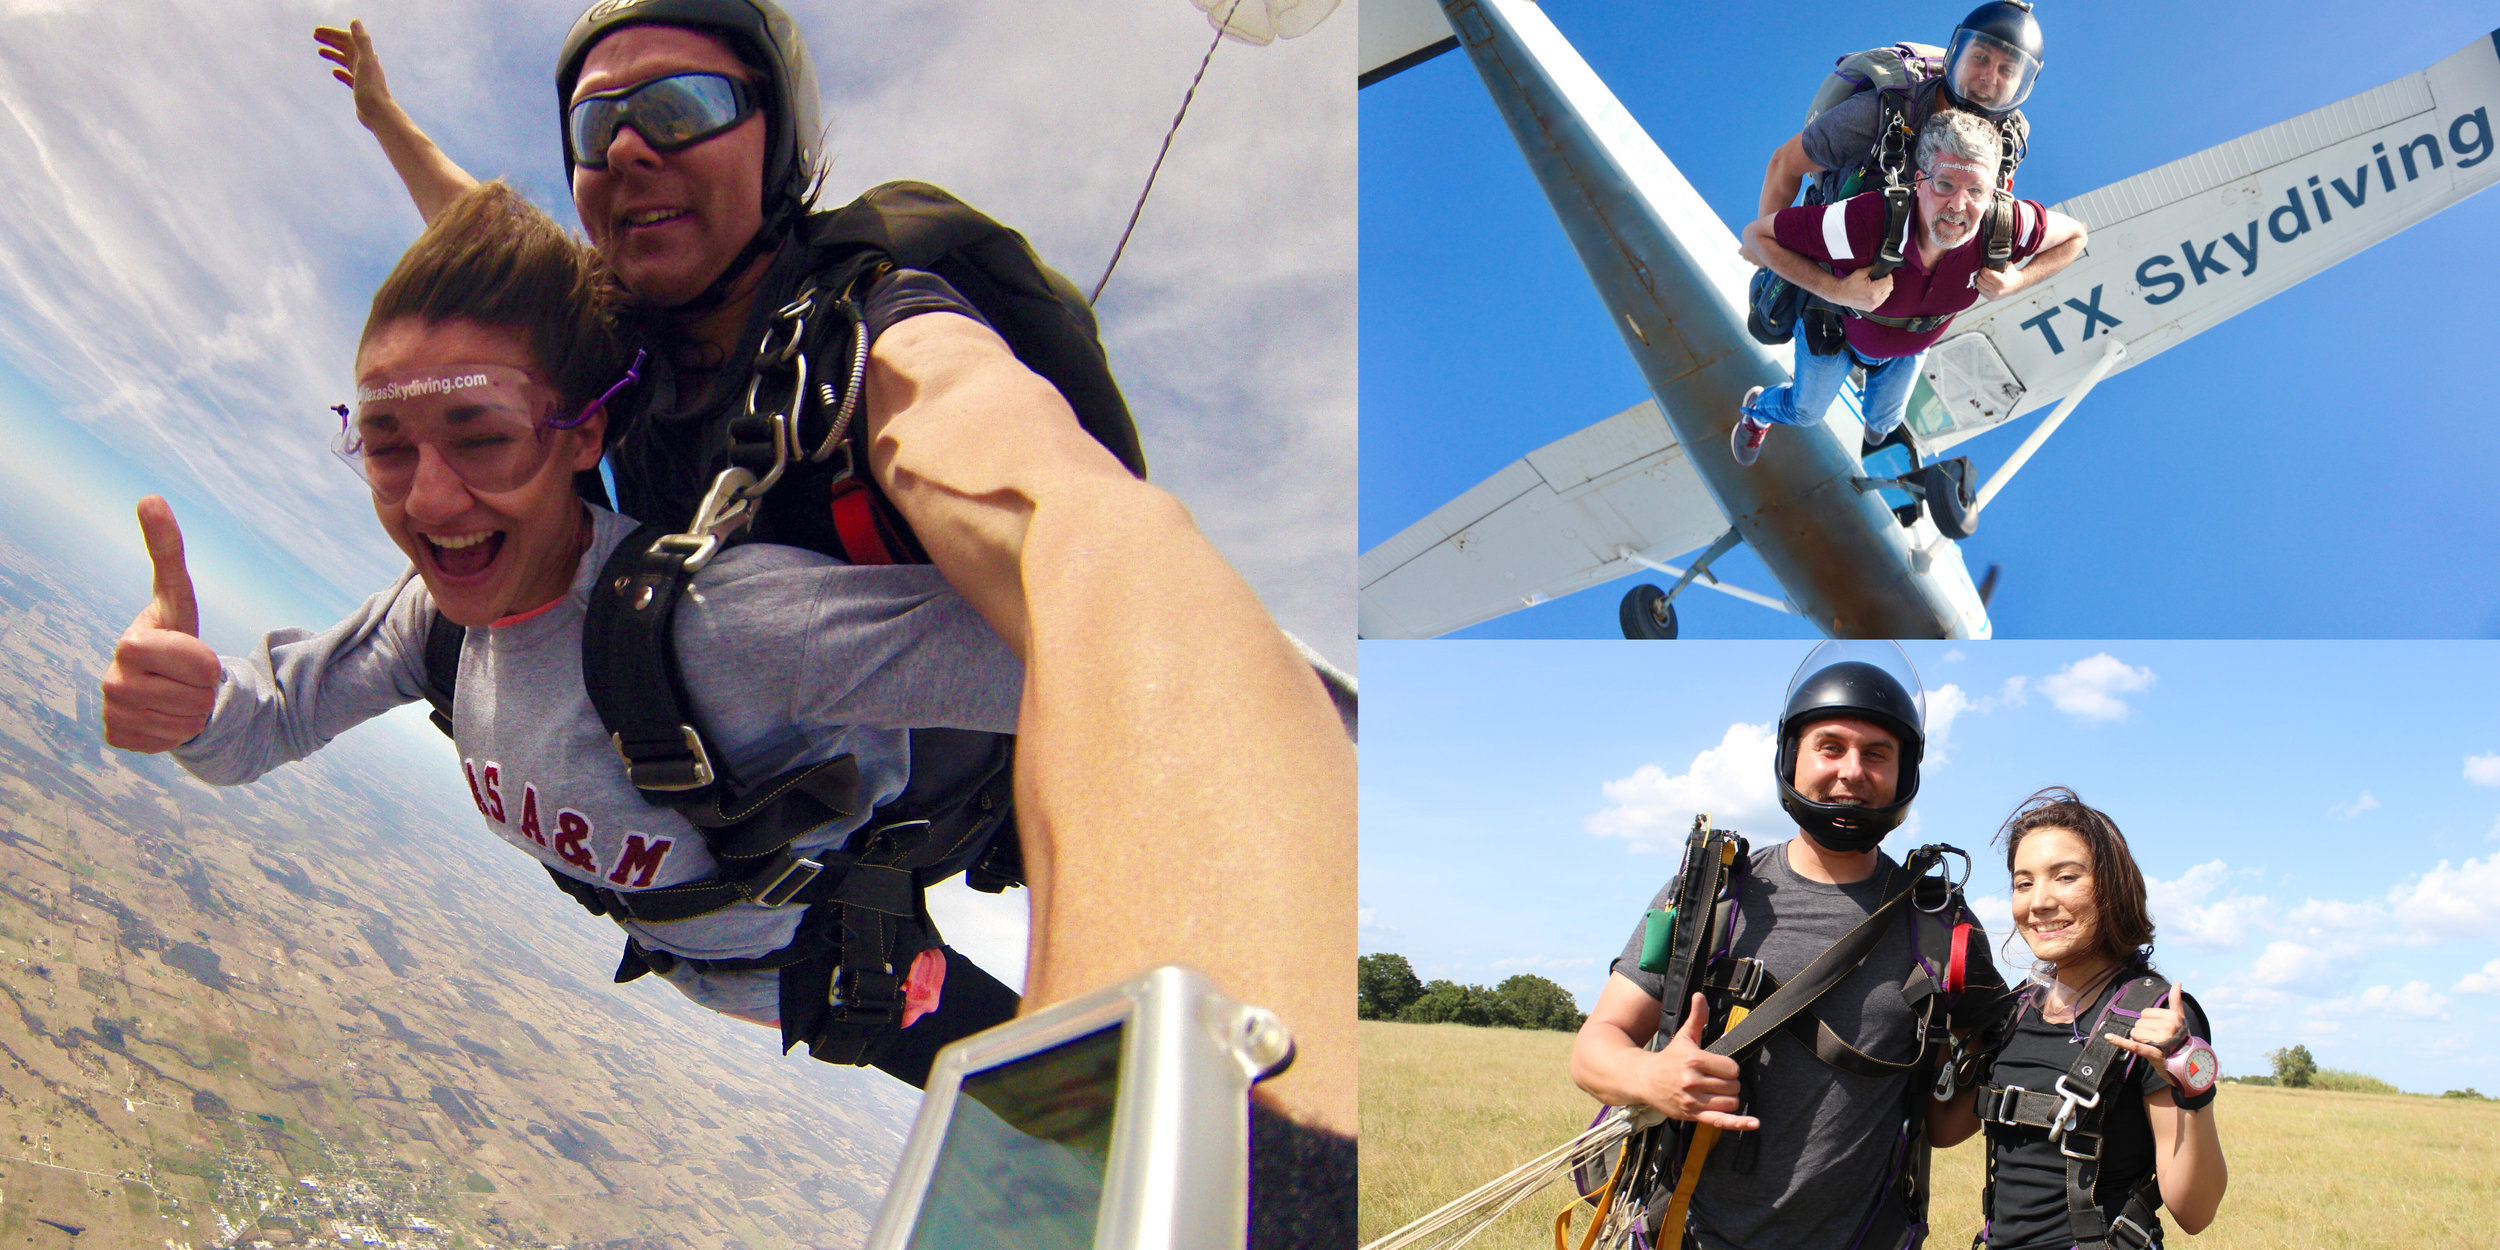 Bryan and College Station skydive at Texas Skydiving!